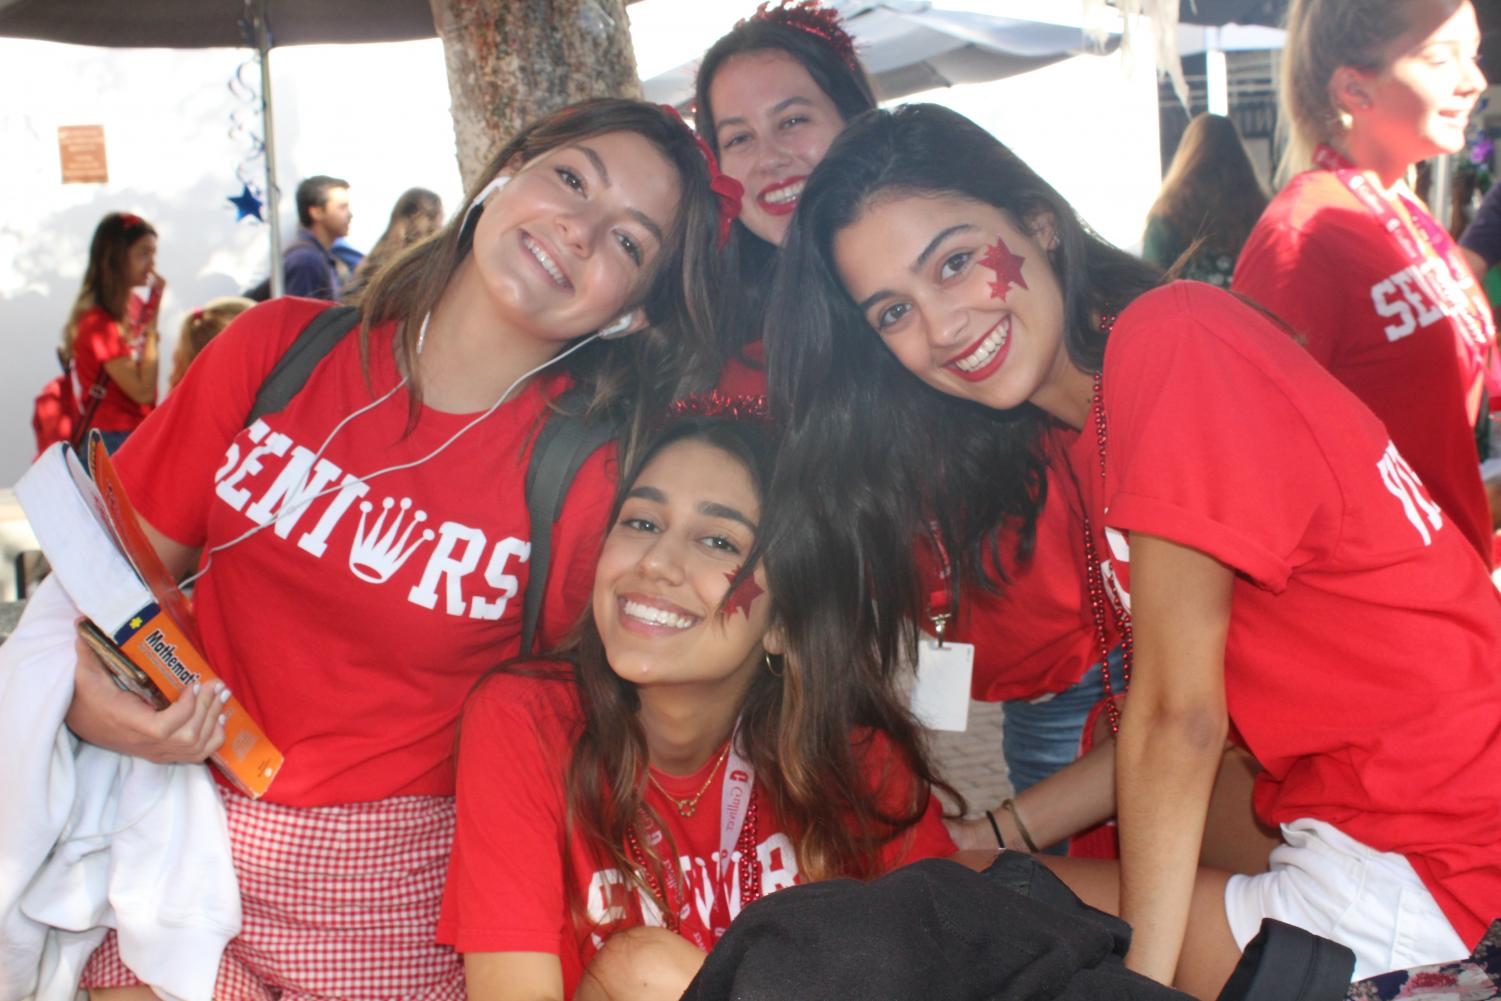 Seniors celebrate their year with school spirit waiting for college decisions.